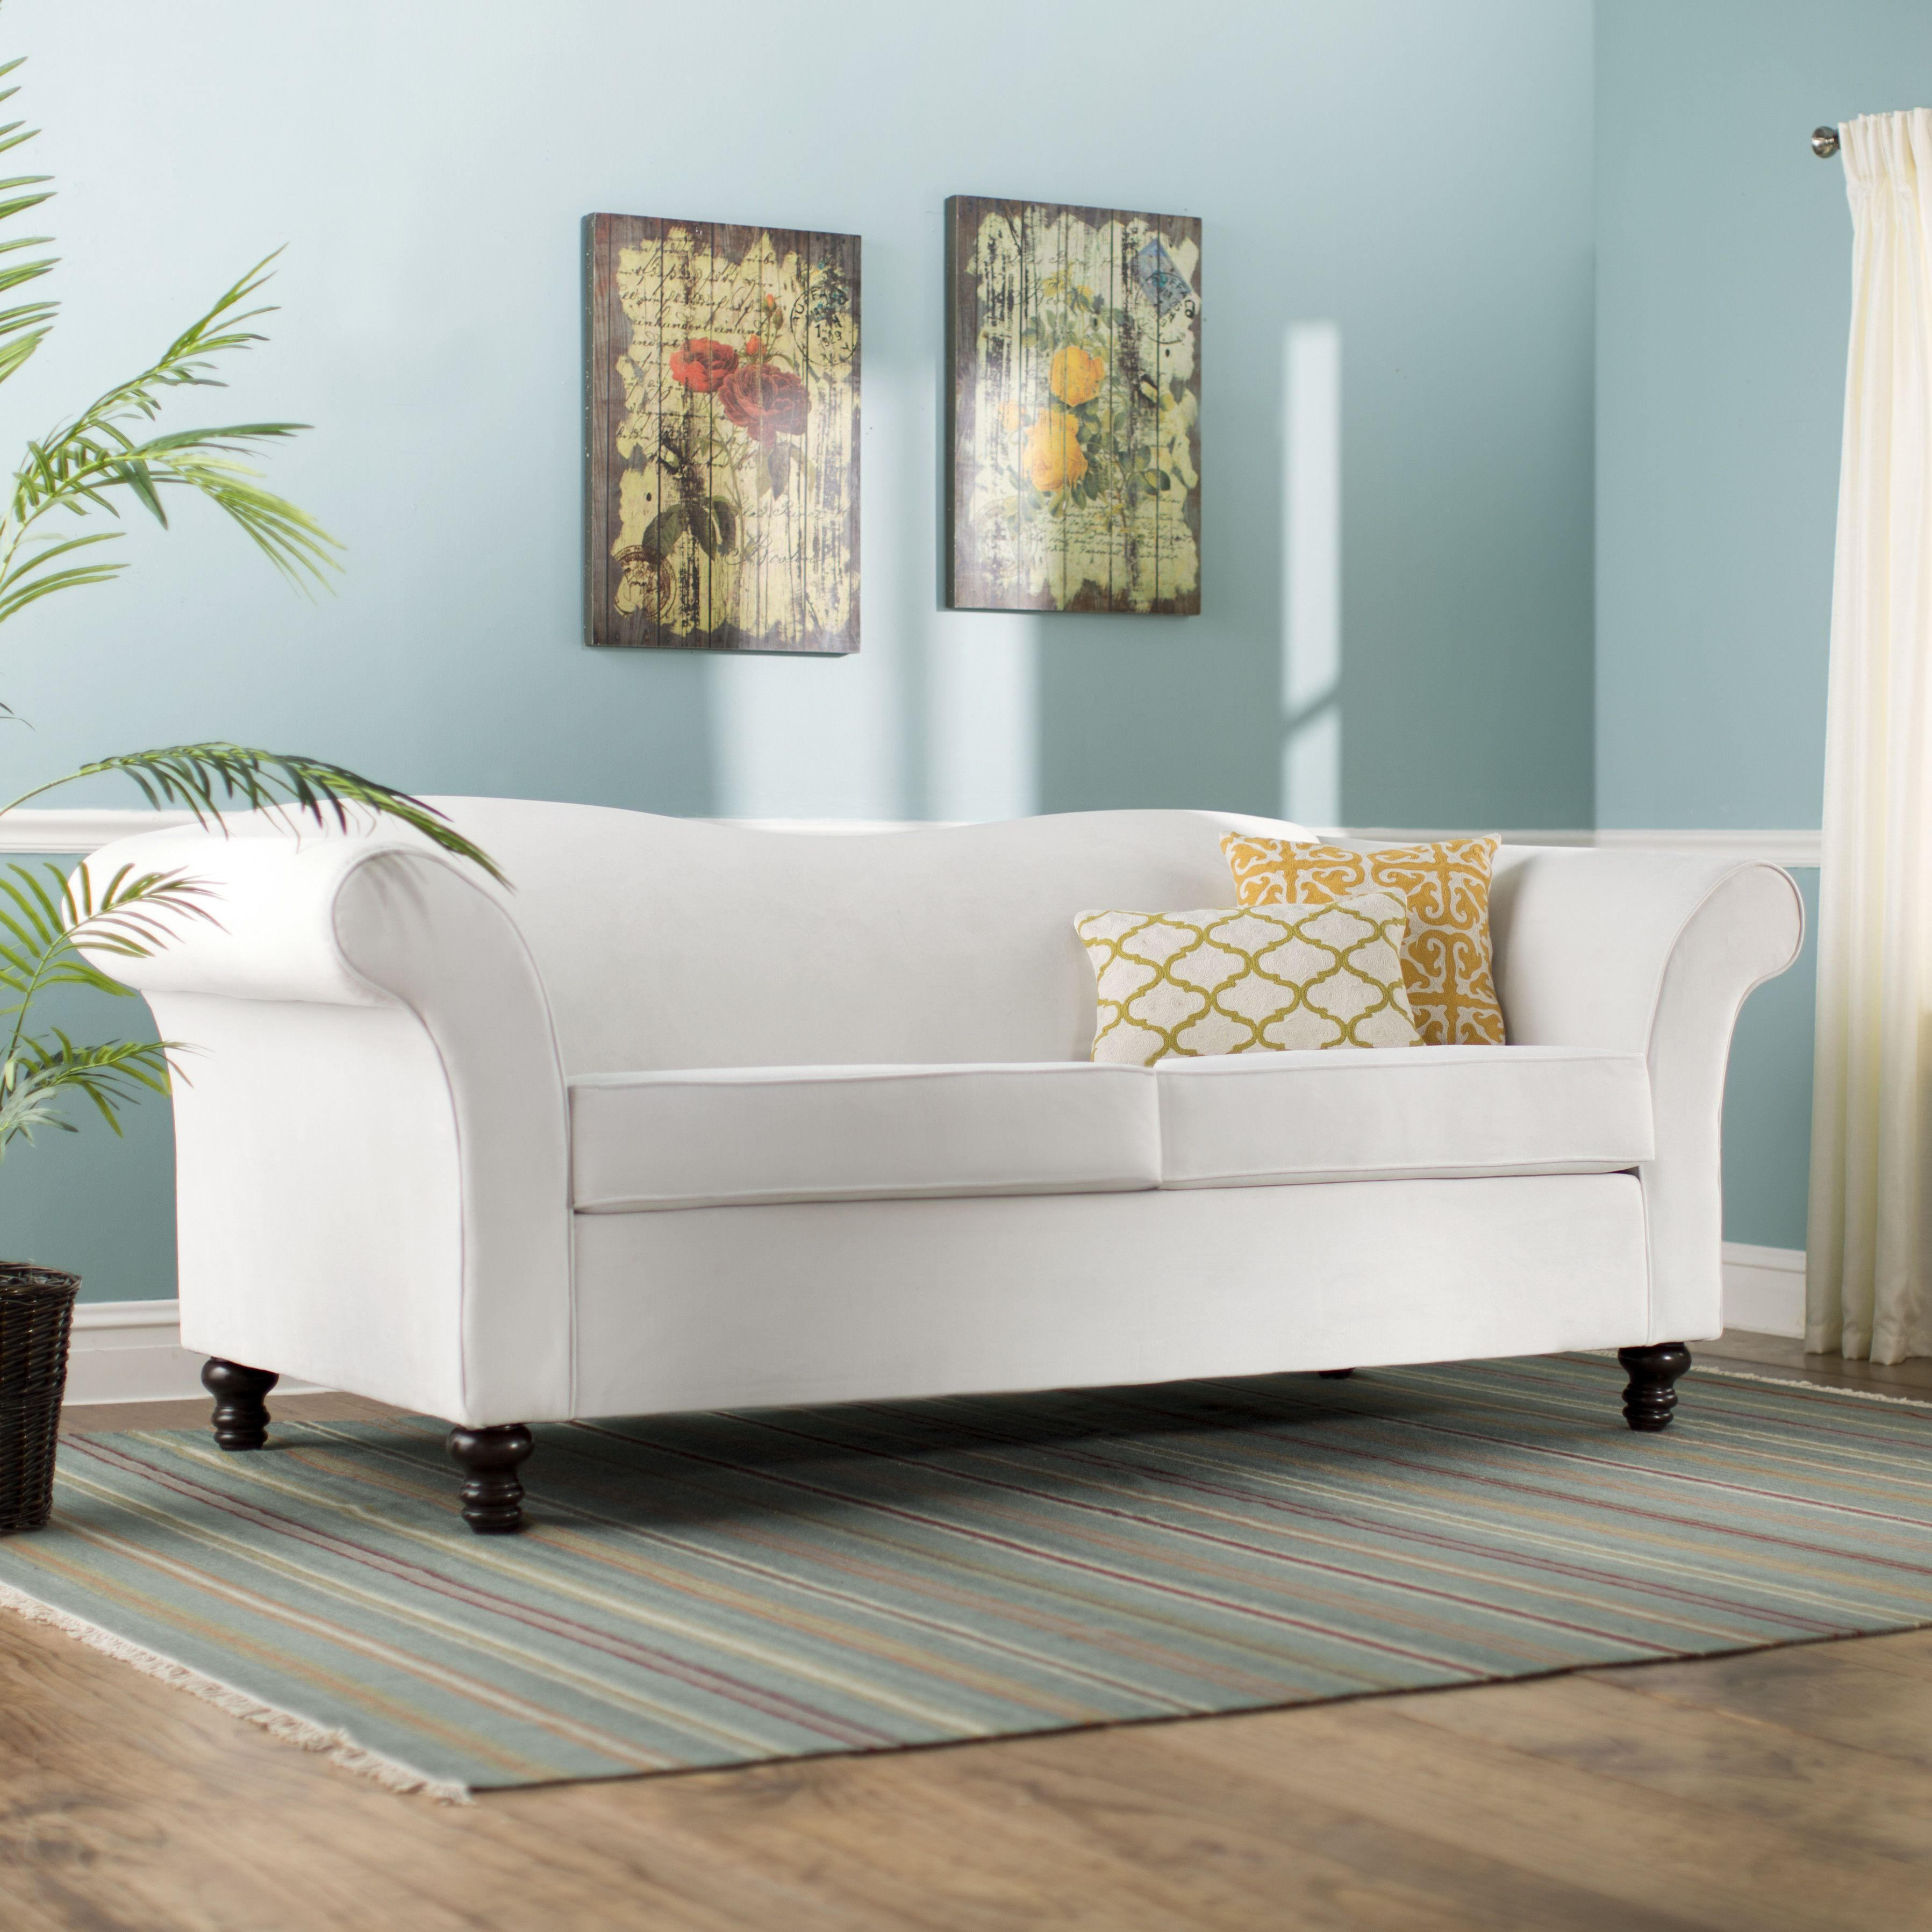 Shop Wayfair.ca For Sofas To Match Every Style And Budget. Enjoy Free  Shipping